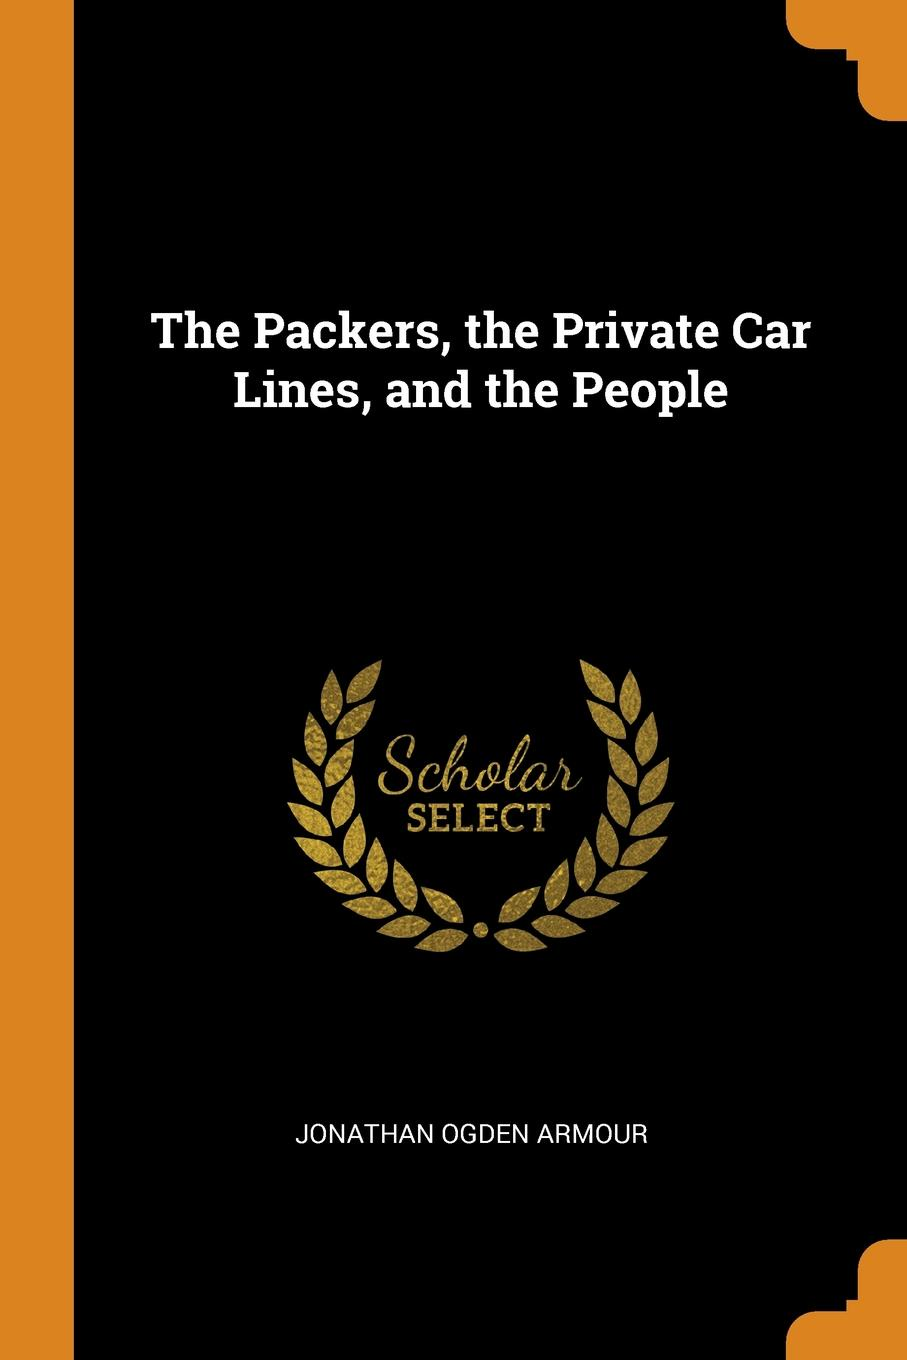 The Packers, the Private Car Lines, and the People